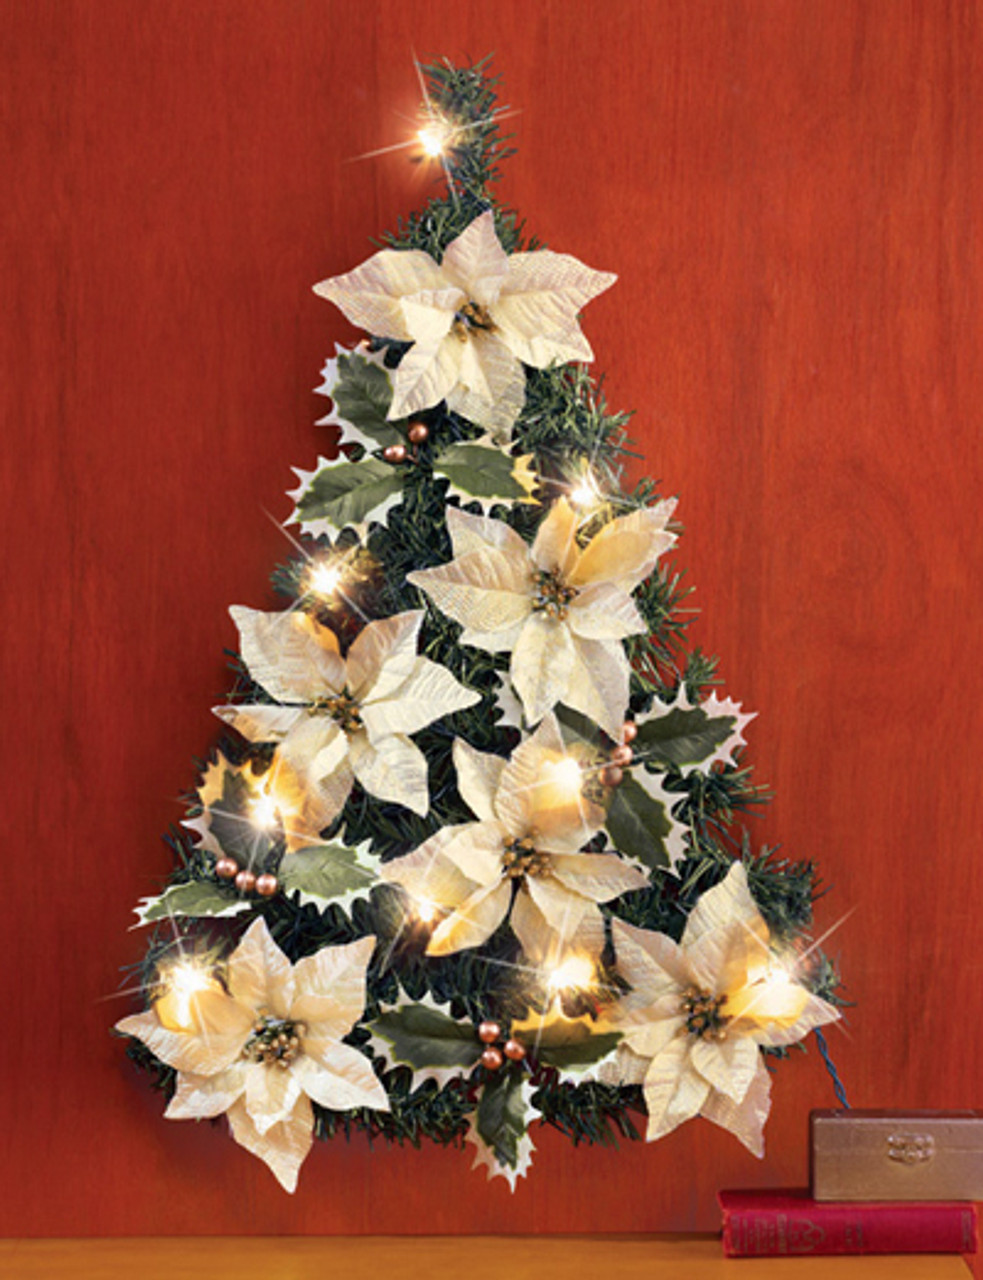 poinsettia christmas tree wall decoration - Poinsettia Christmas Decorations